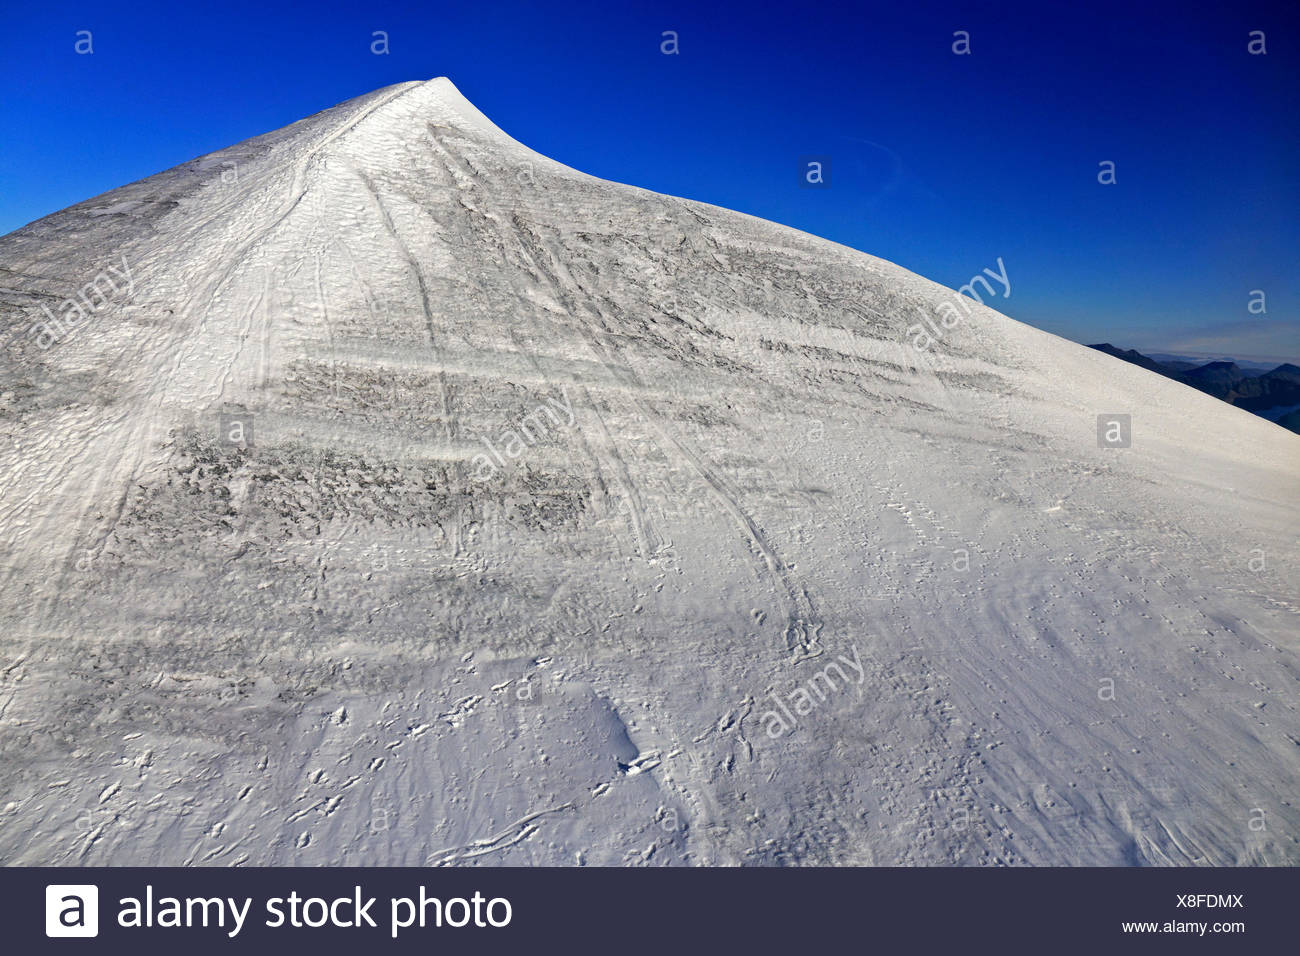 Europe, Sweden, Lapland, province of Norrbotten, Nikkaluokta, view at the Kebnekaise - Stock Image